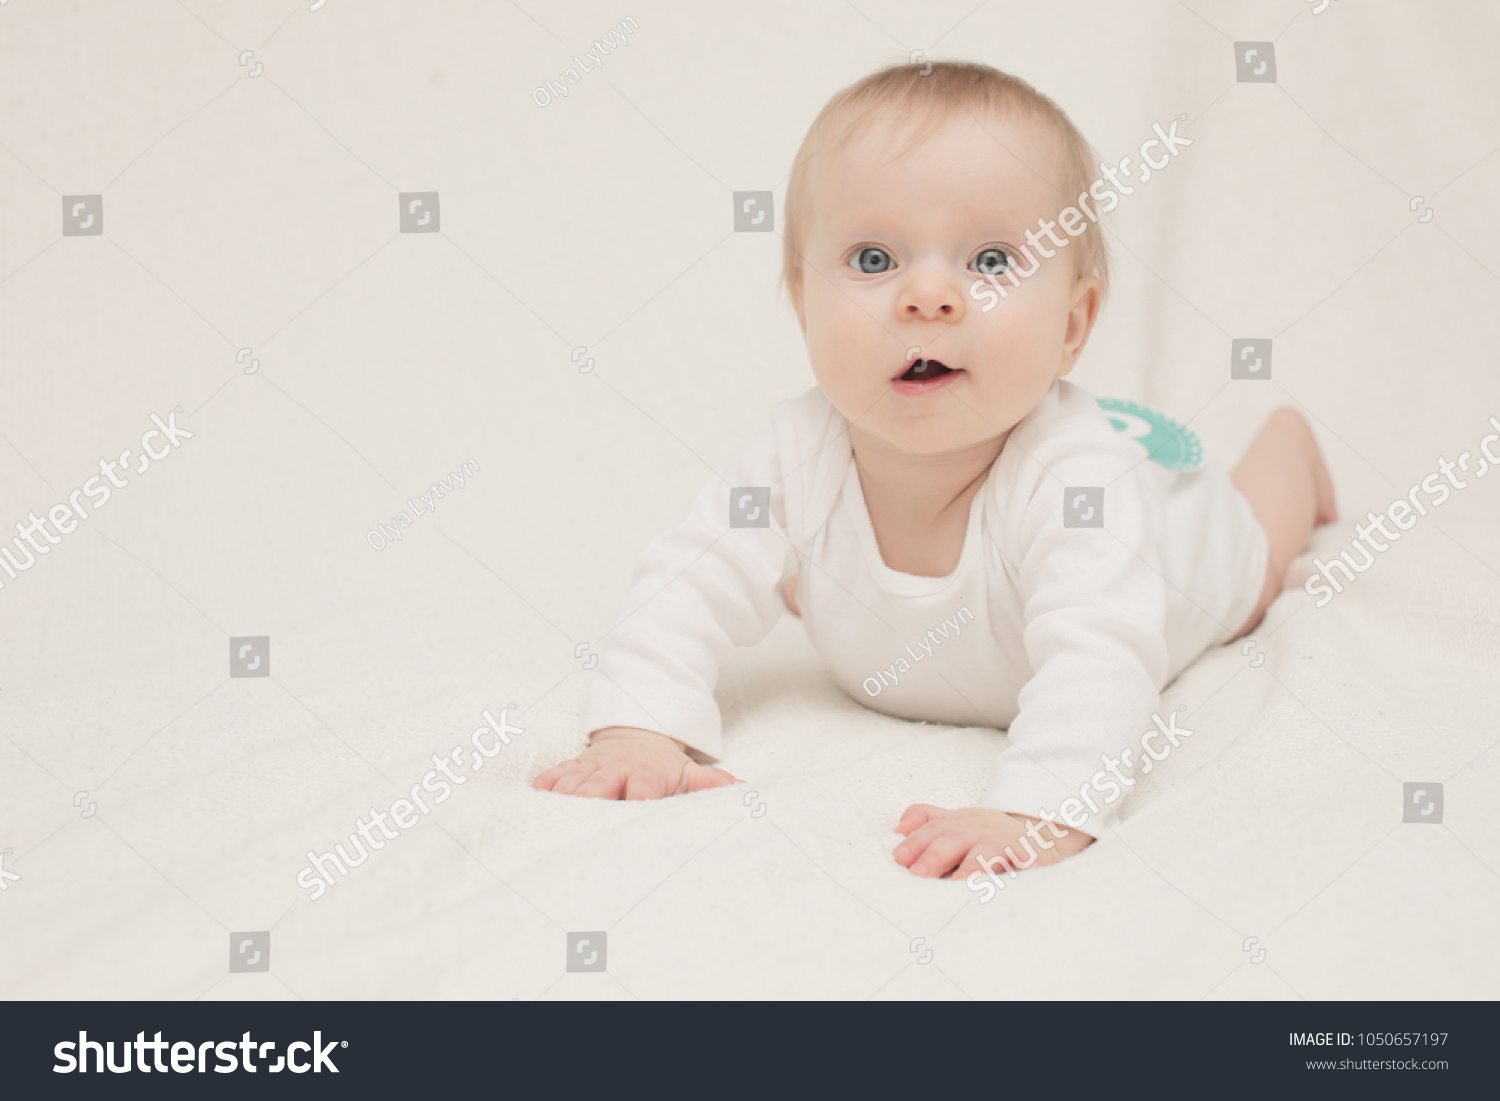 A 8 month old baby girl in front of a white background sticker 8